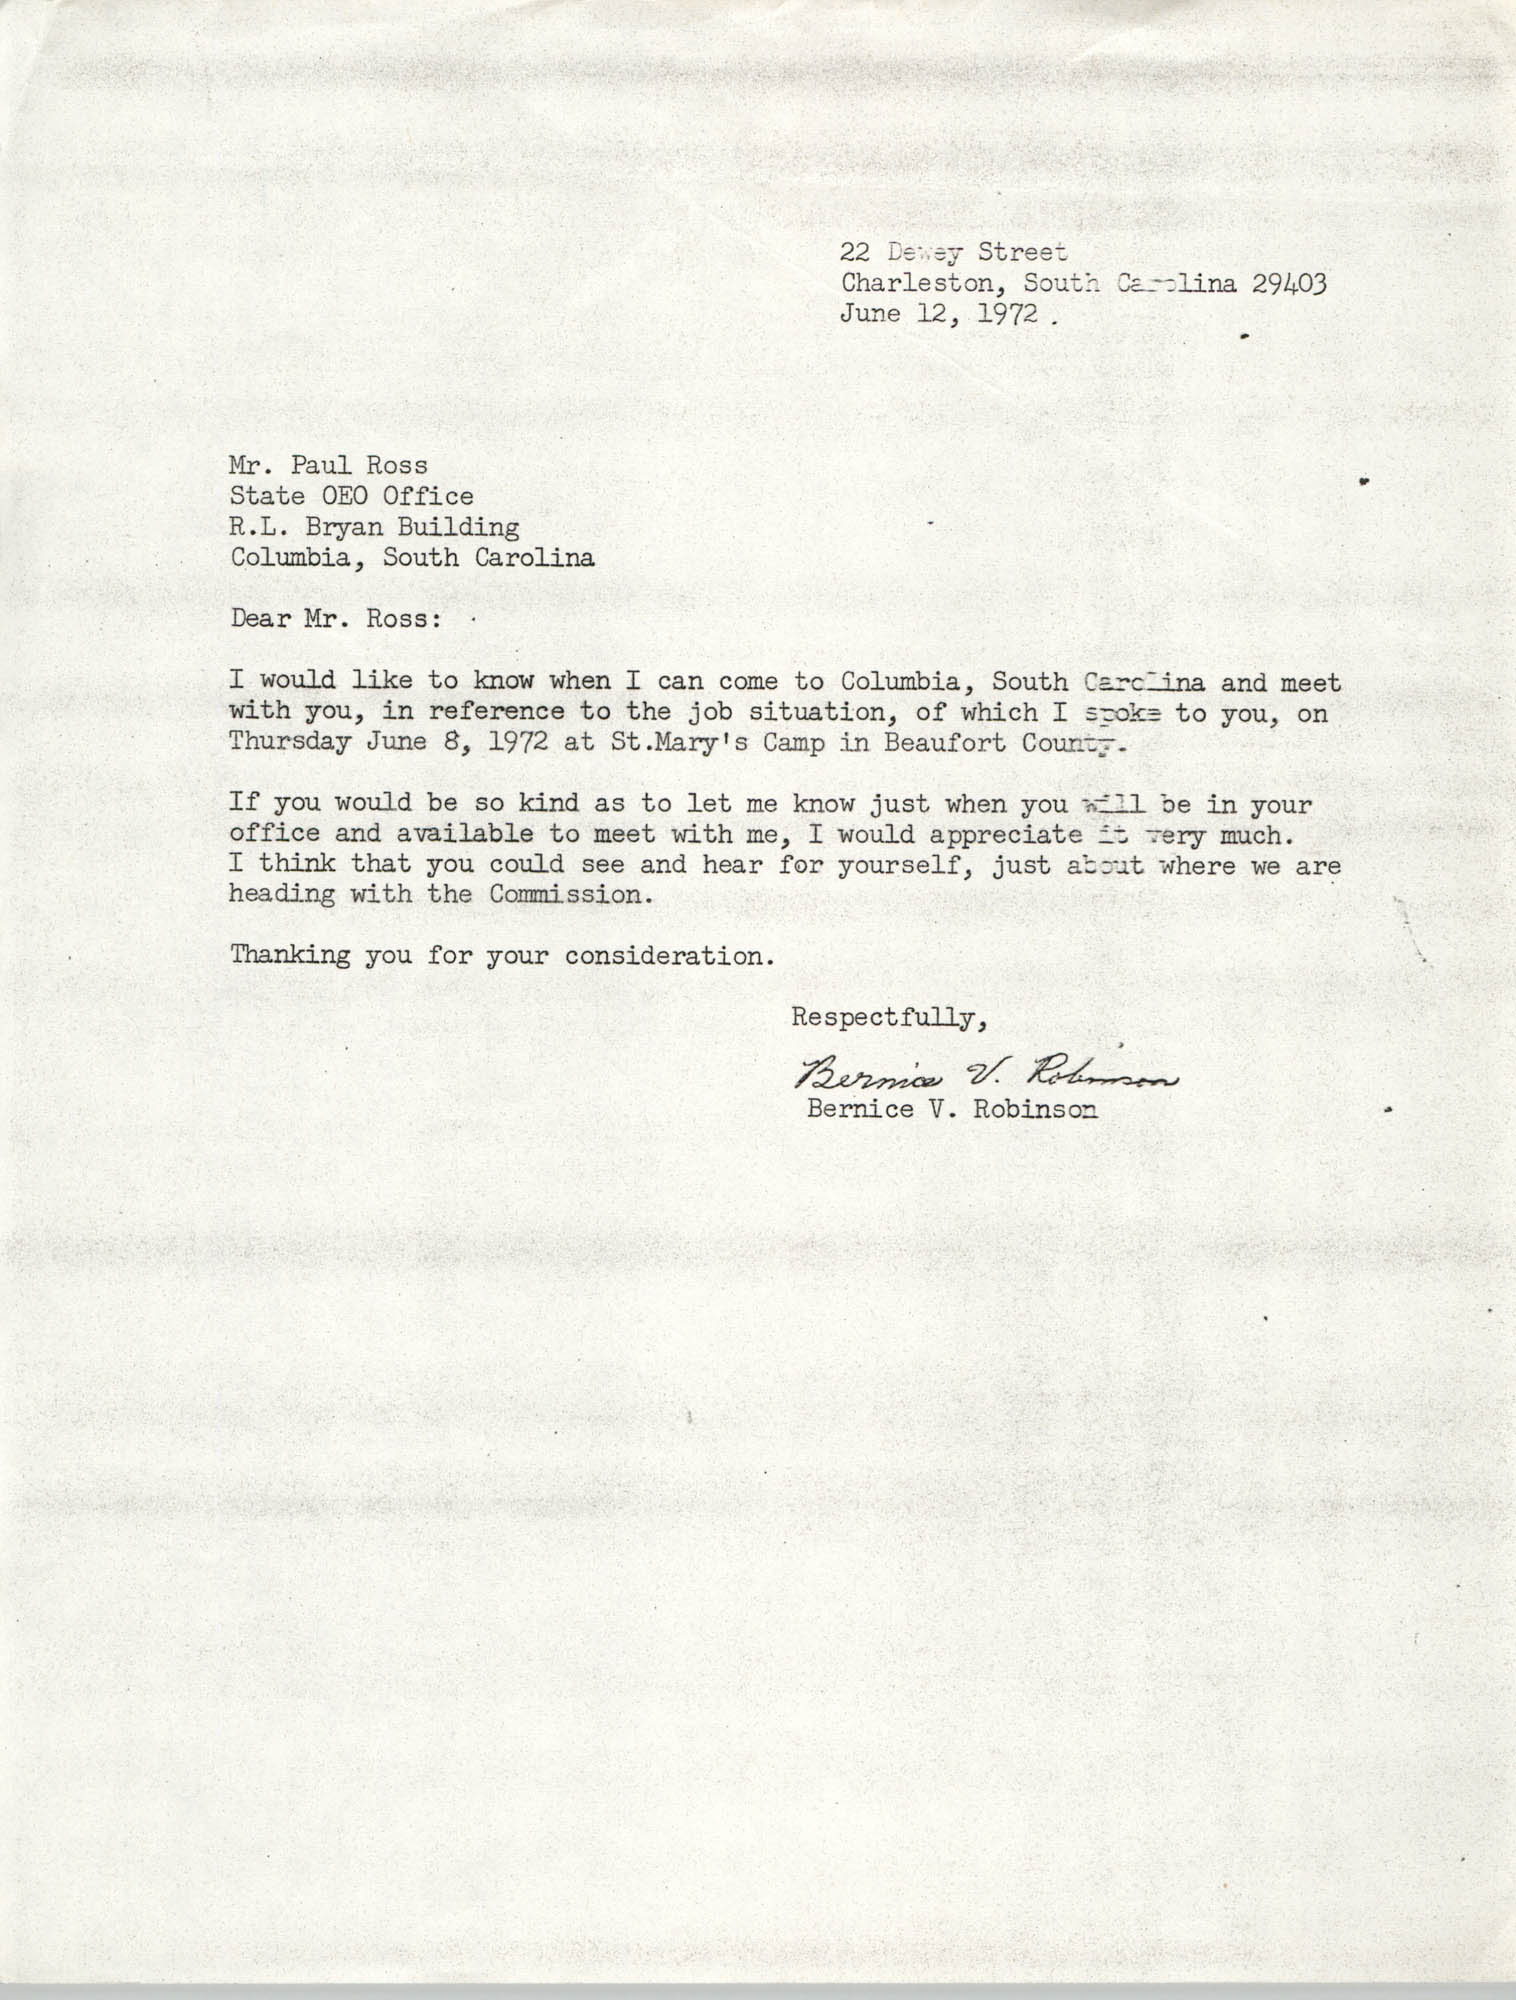 Letter from Bernice V. Robinson to Paul Ross, June 12, 1972